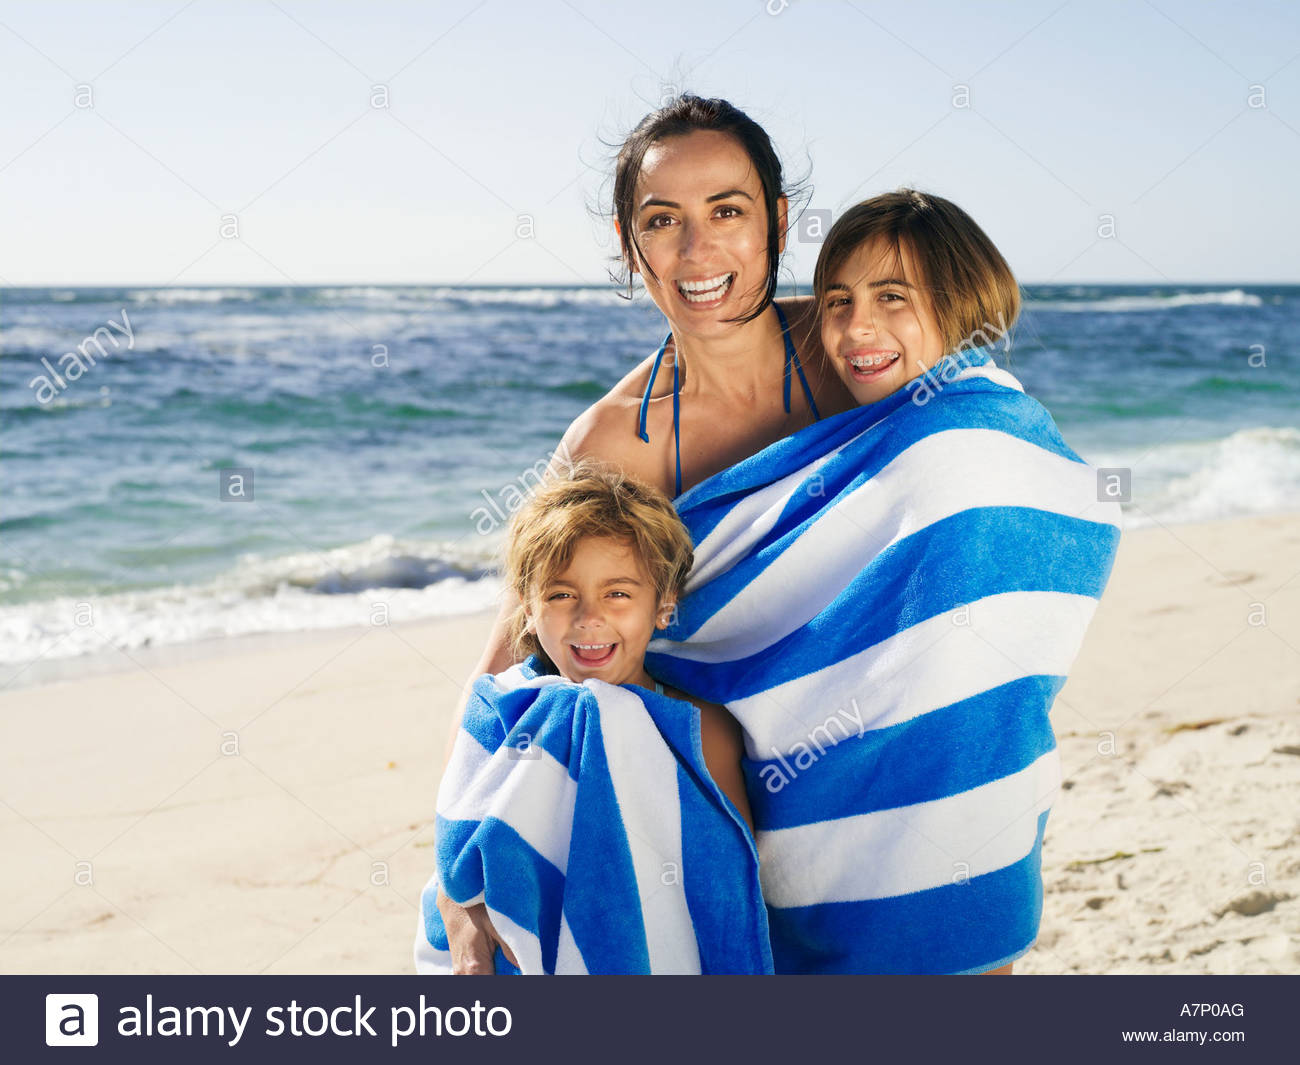 Mother drying two daughters 5 12 with stripy blue towel on sandy beach smiling portrait - Stock Image